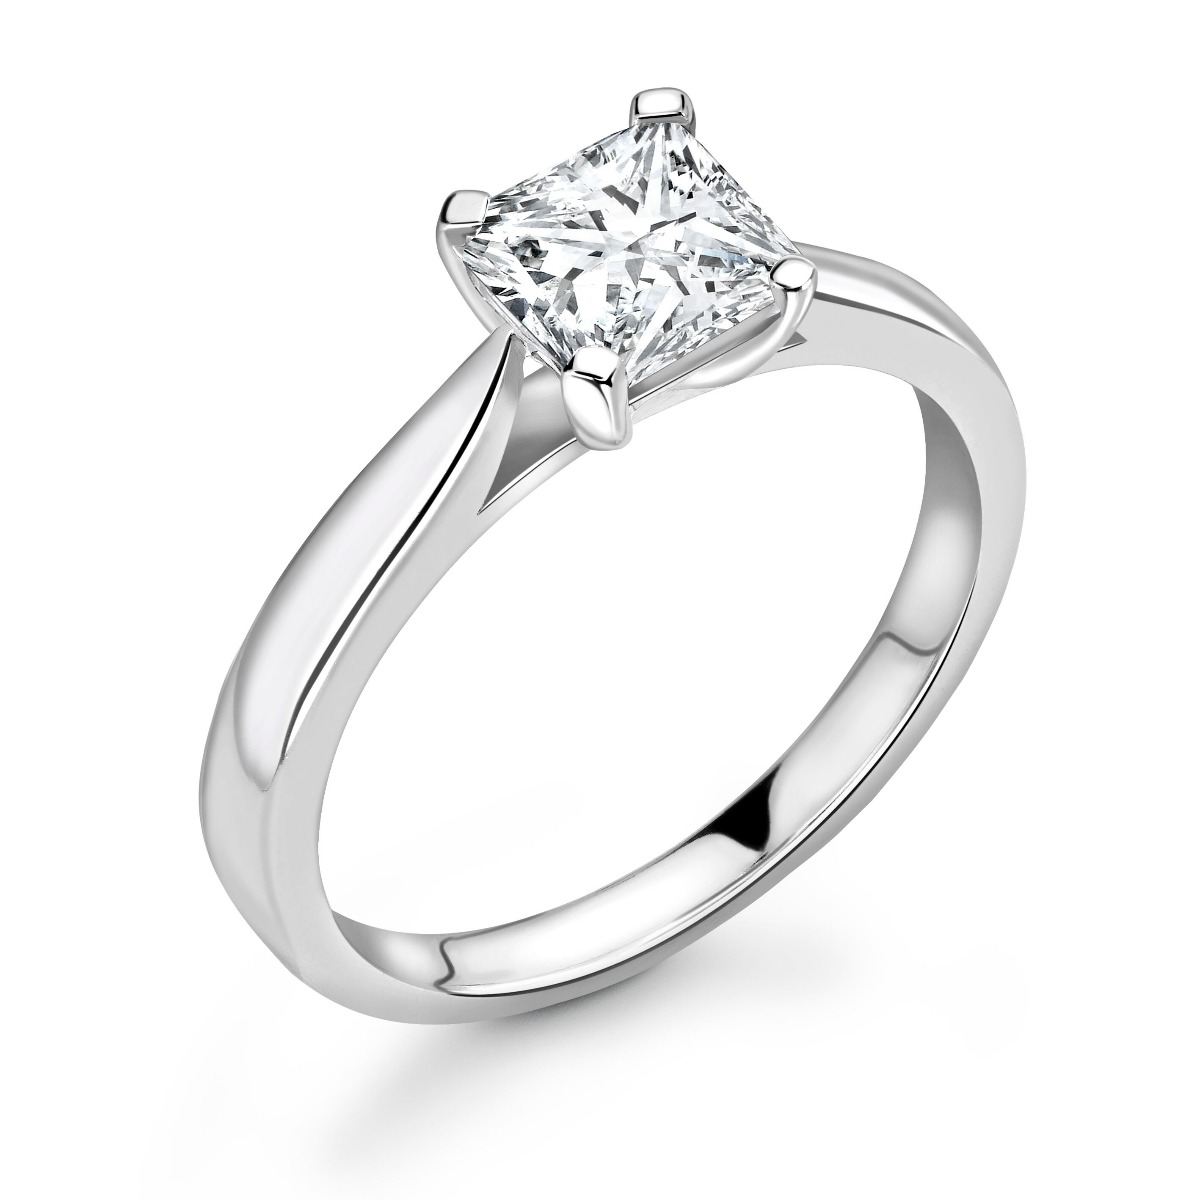 0.25ct Abigail Solitaire | Diamond Cushion Solitaire Engagement Ring | 18K White Gold